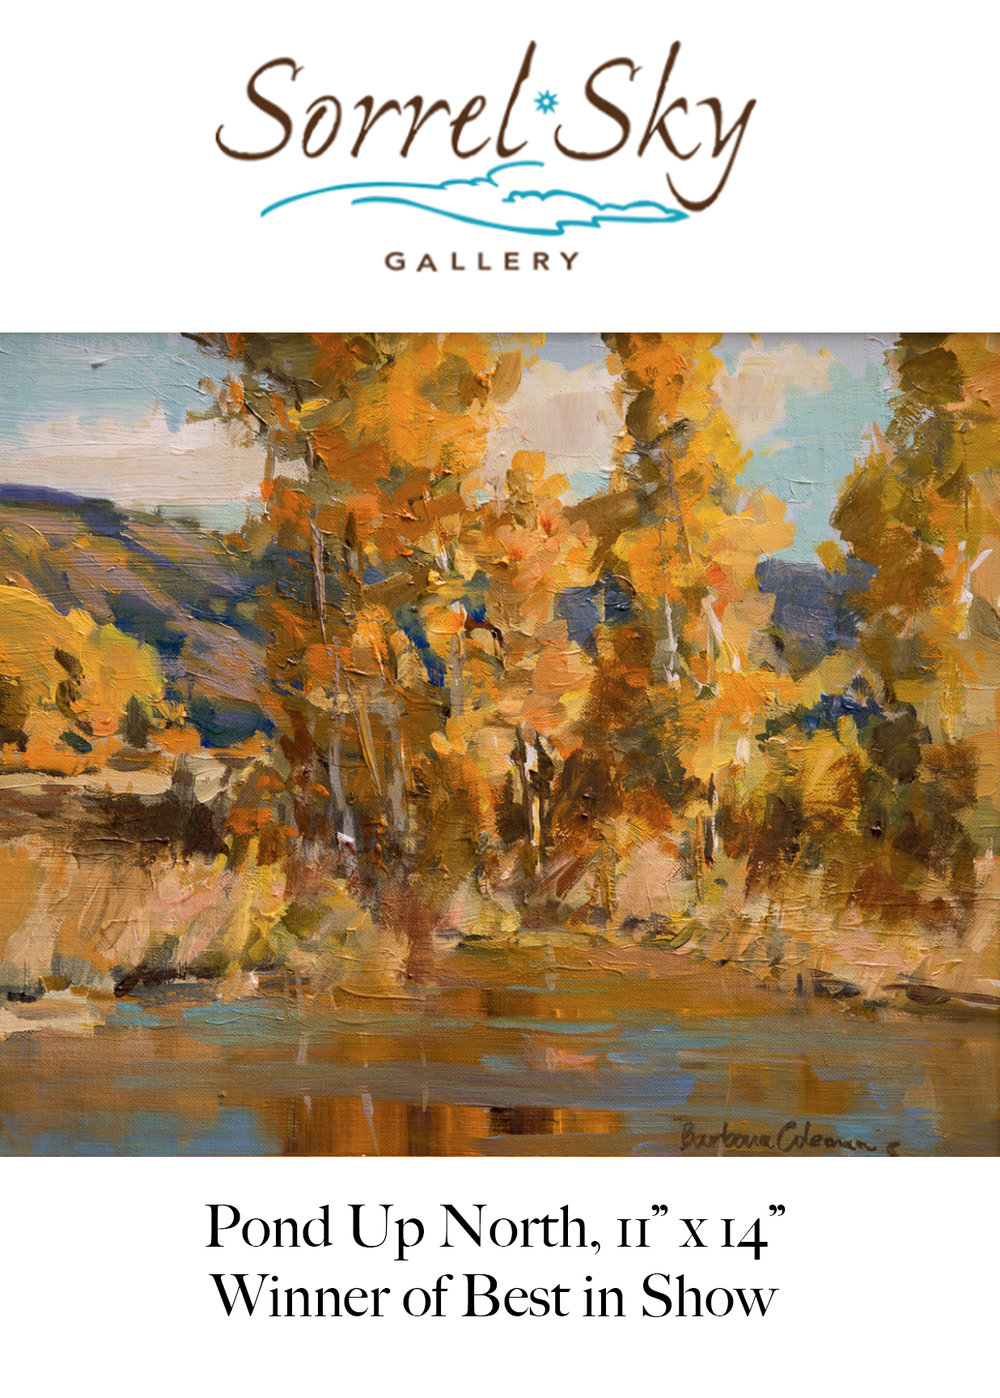 Plein Air Painters of New Mexico National Juried Exhibition Nov. 2018 - I'll be showing work at the Sorrel Sky Gallery in Santa Fe Friday Nov. 2nd, 2018 - Sunday Nov. 28th, 2018Opening Reception & Awards Presentation:Friday, Nov. 2nd 5-7pmhttps://www.papnm.org/2018-10th-National-Juried-Members-Exhibition/